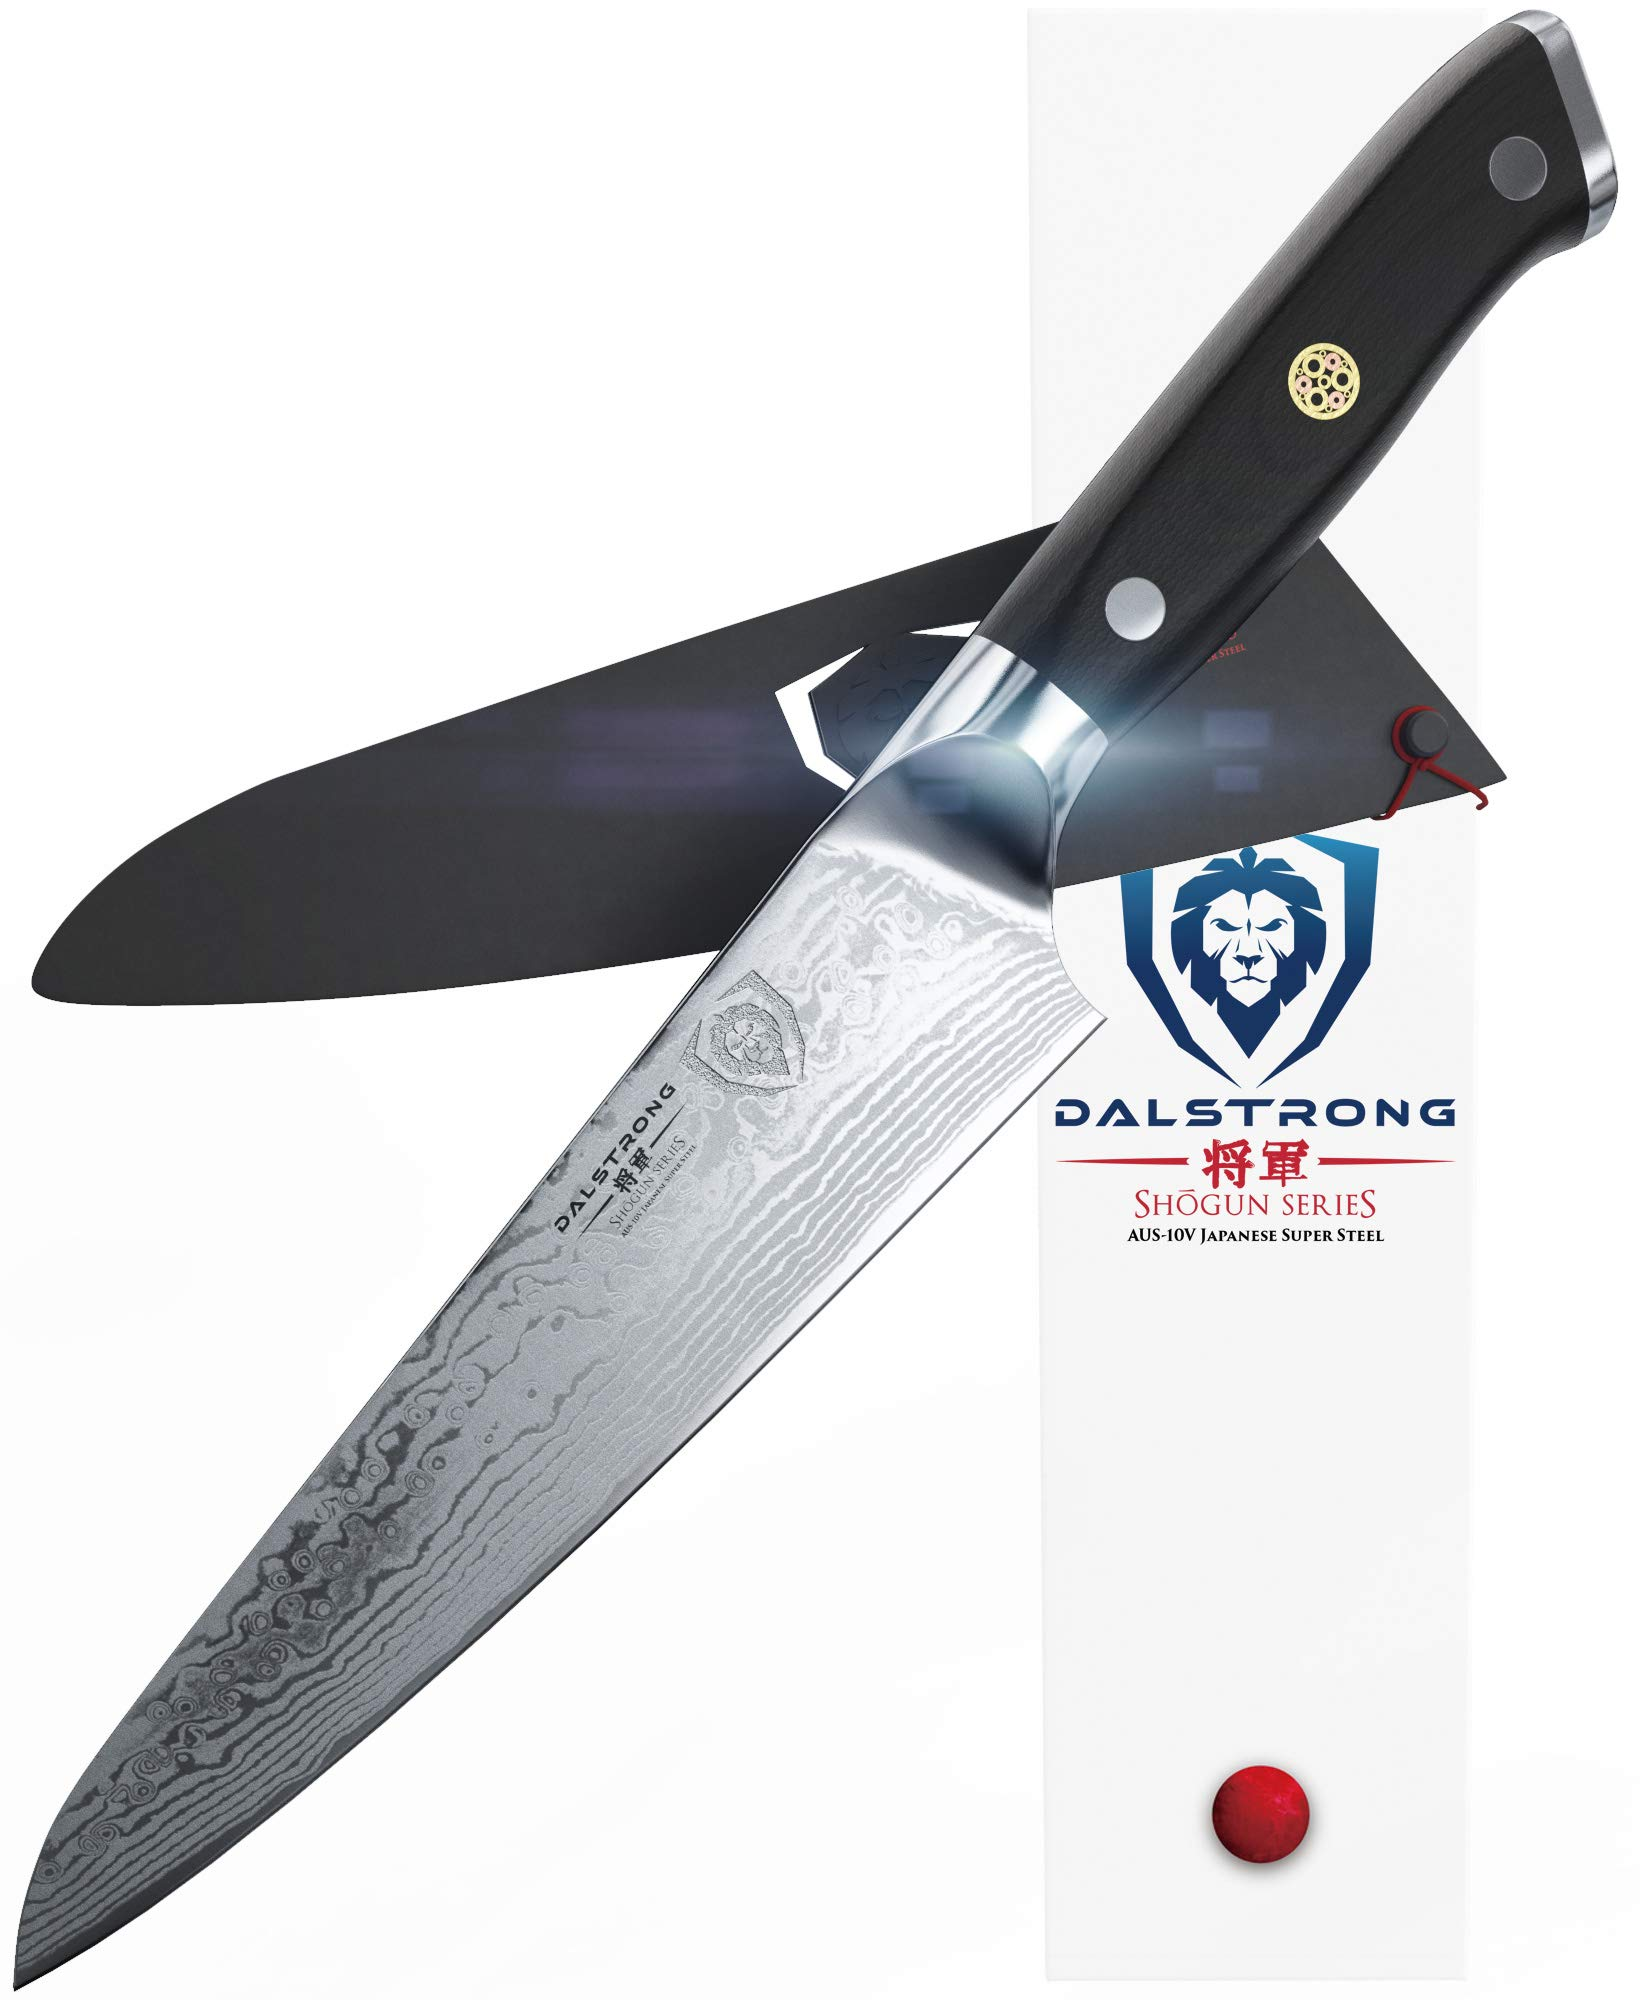 """DALSTRONG Chef's Knife - Shogun Series - Damascus - Japanese AUS-10V Super Steel - Vacuum Treated (7"""" Chef Knife, Black)"""